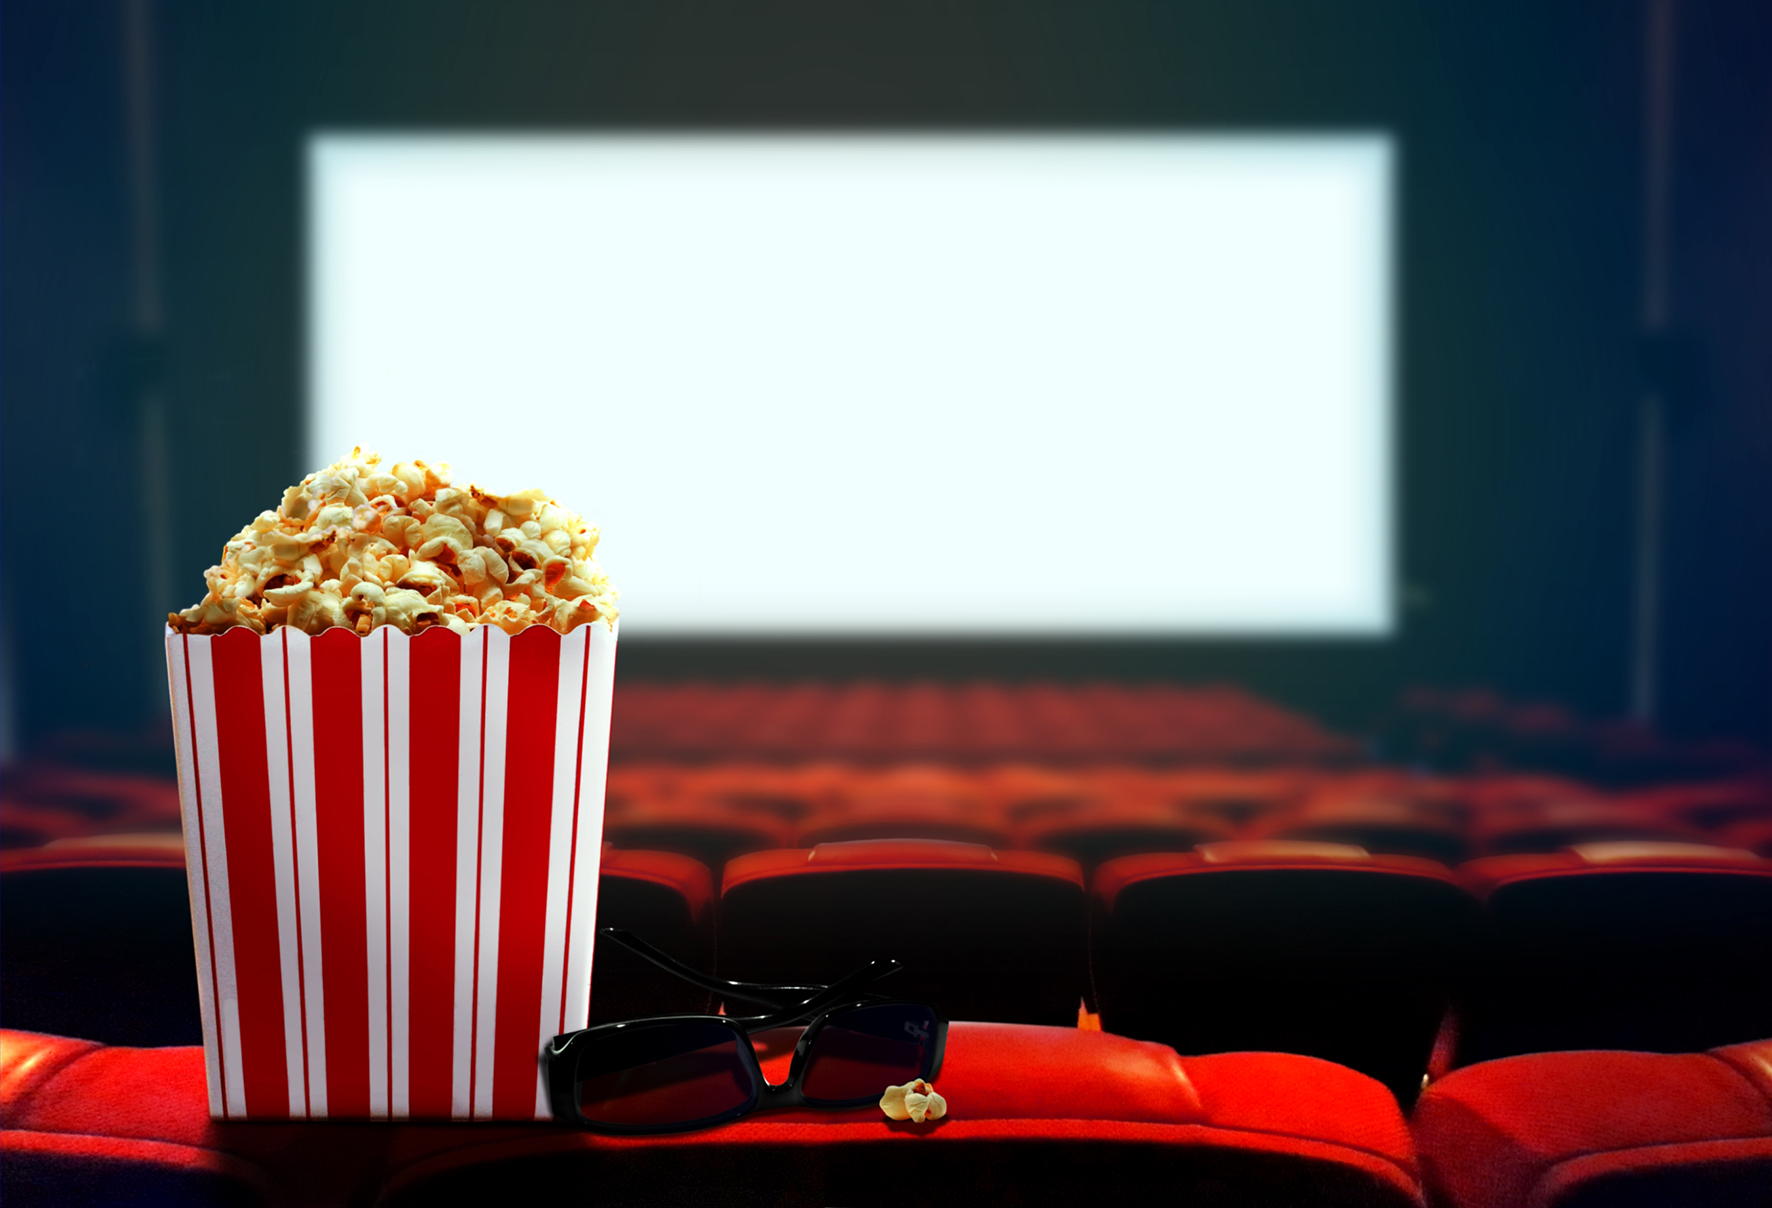 box of popcorn sitting in front of theater movie screen